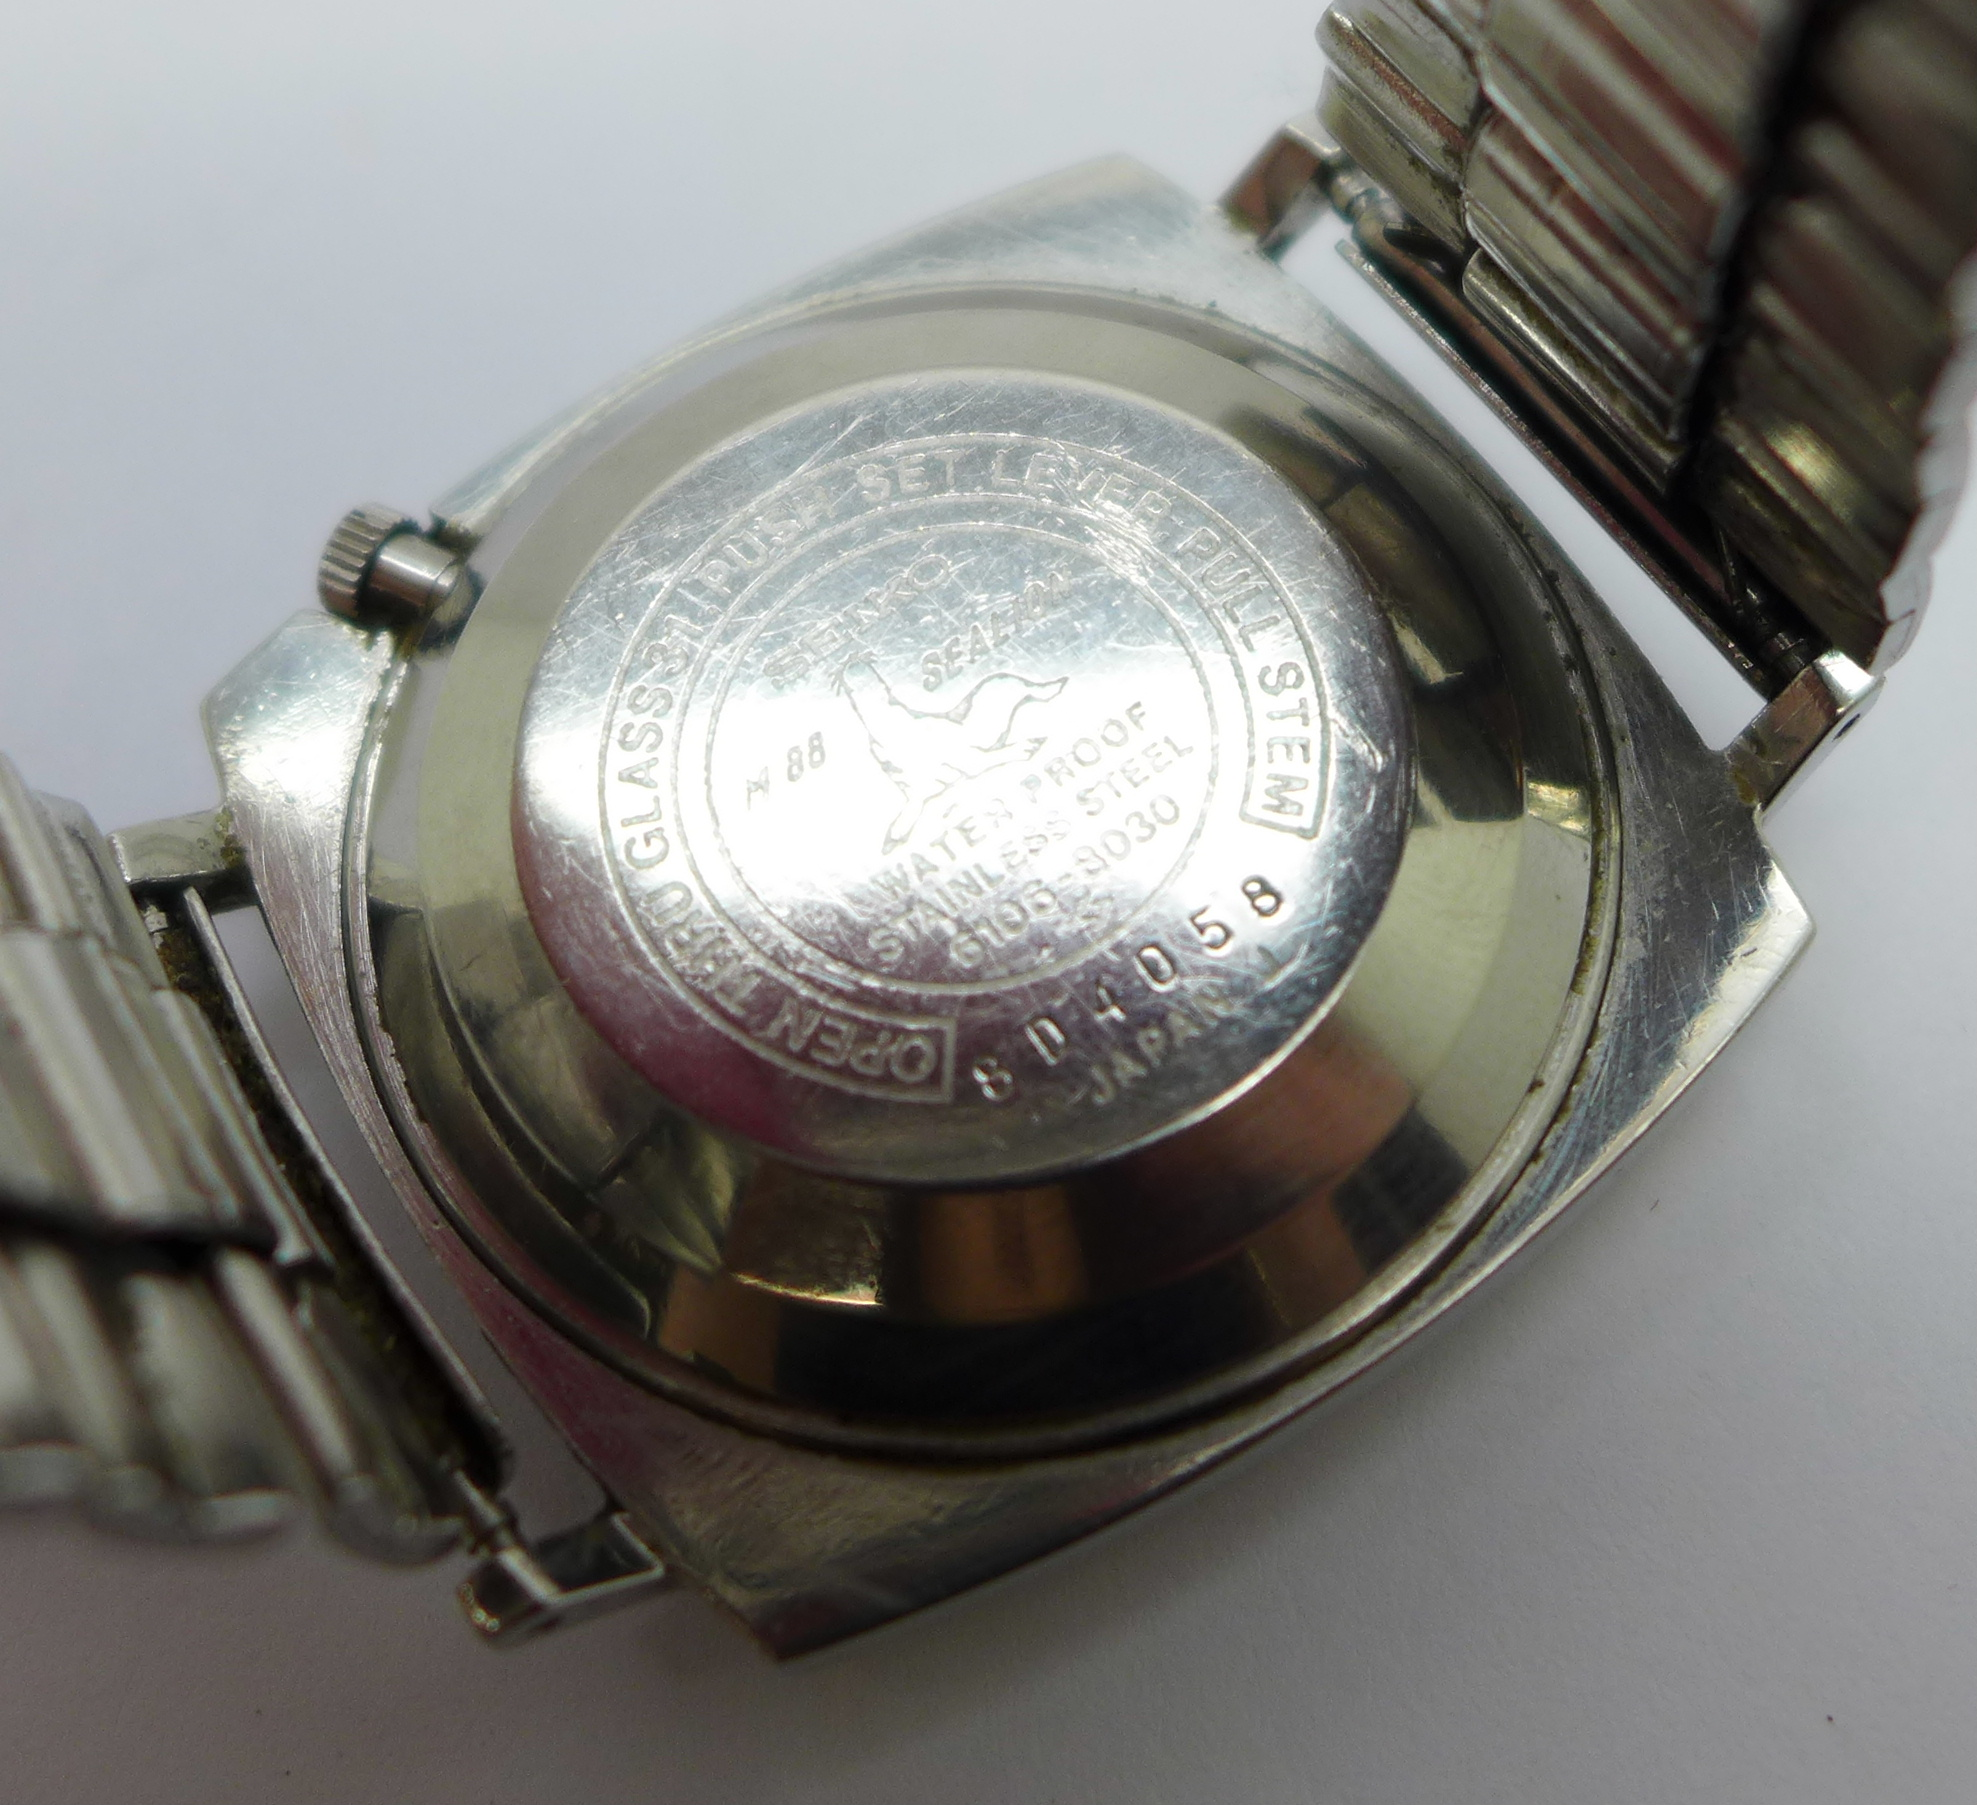 A Seiko DX Sea Lion automatic wristwatch, with day and date - Image 5 of 6